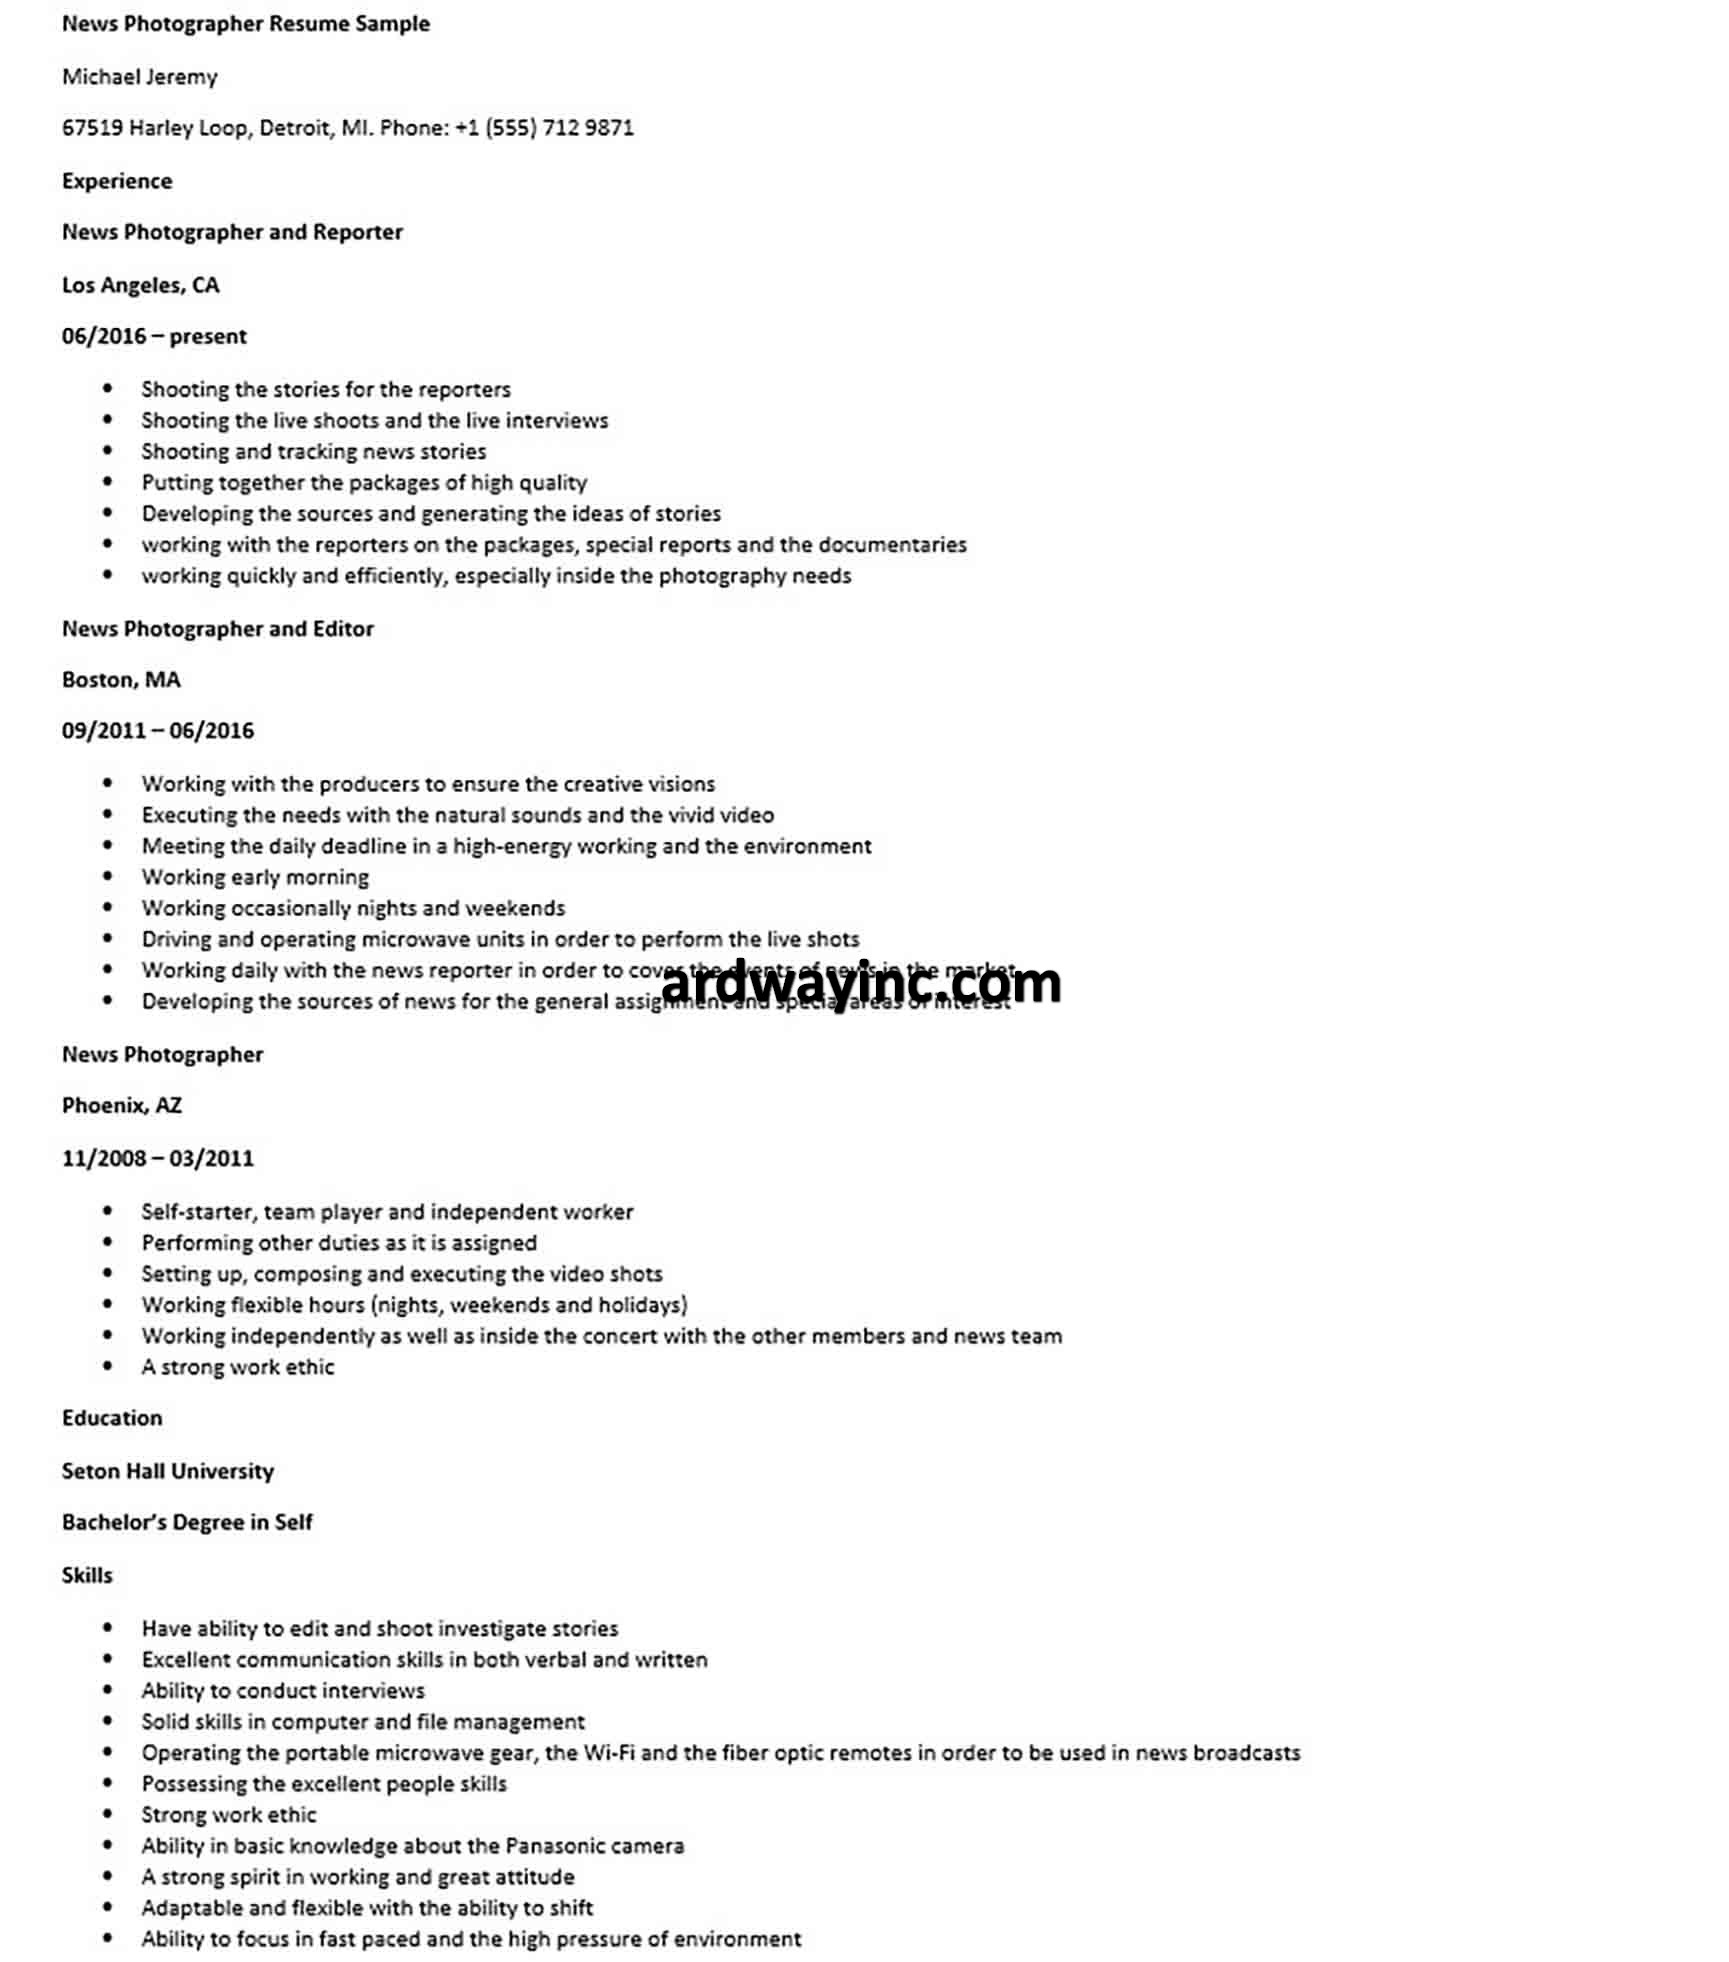 News Photographer Resume Sample